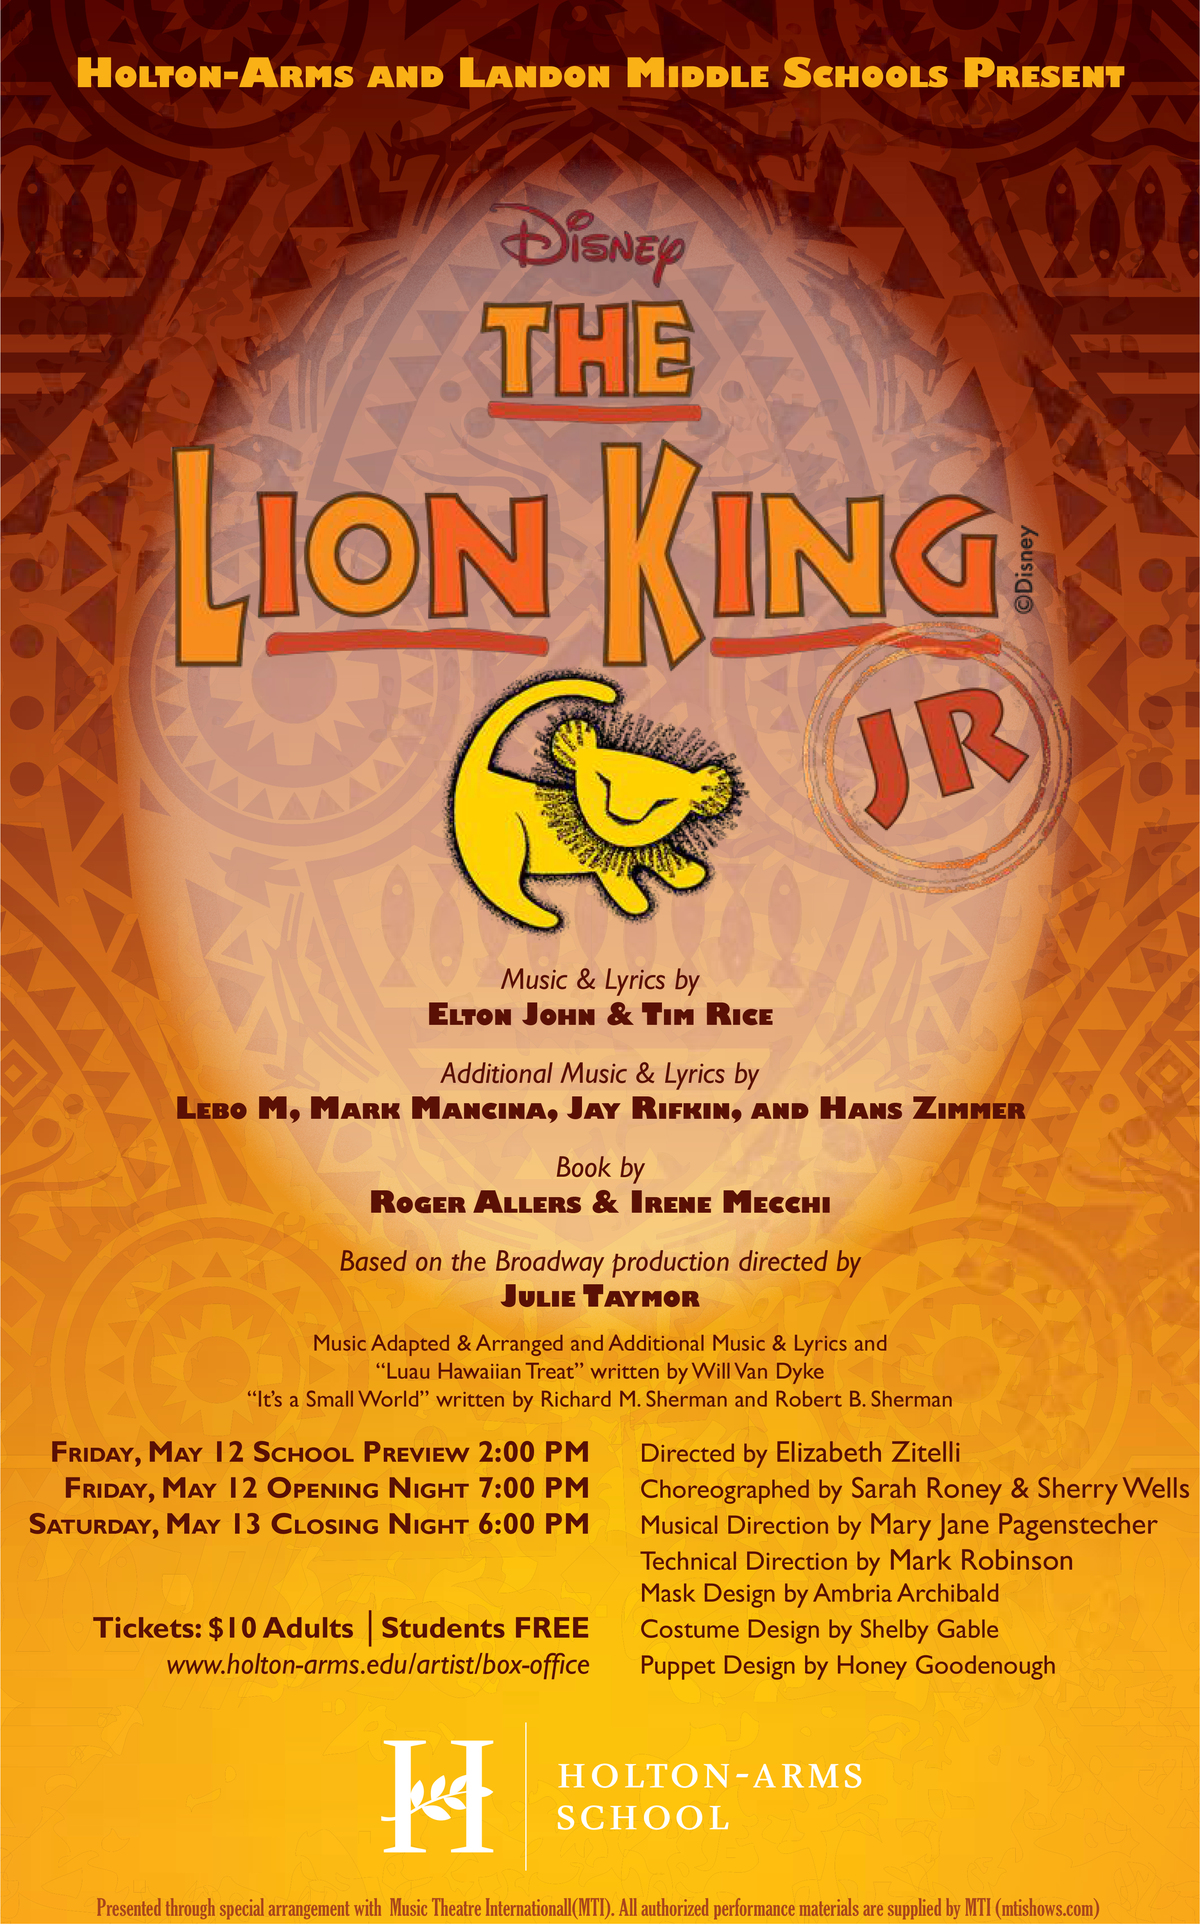 HOLTON-ARMS MS MUSICAL: THE LION KING JR. PERFORMANCES, MAY 12 & 13